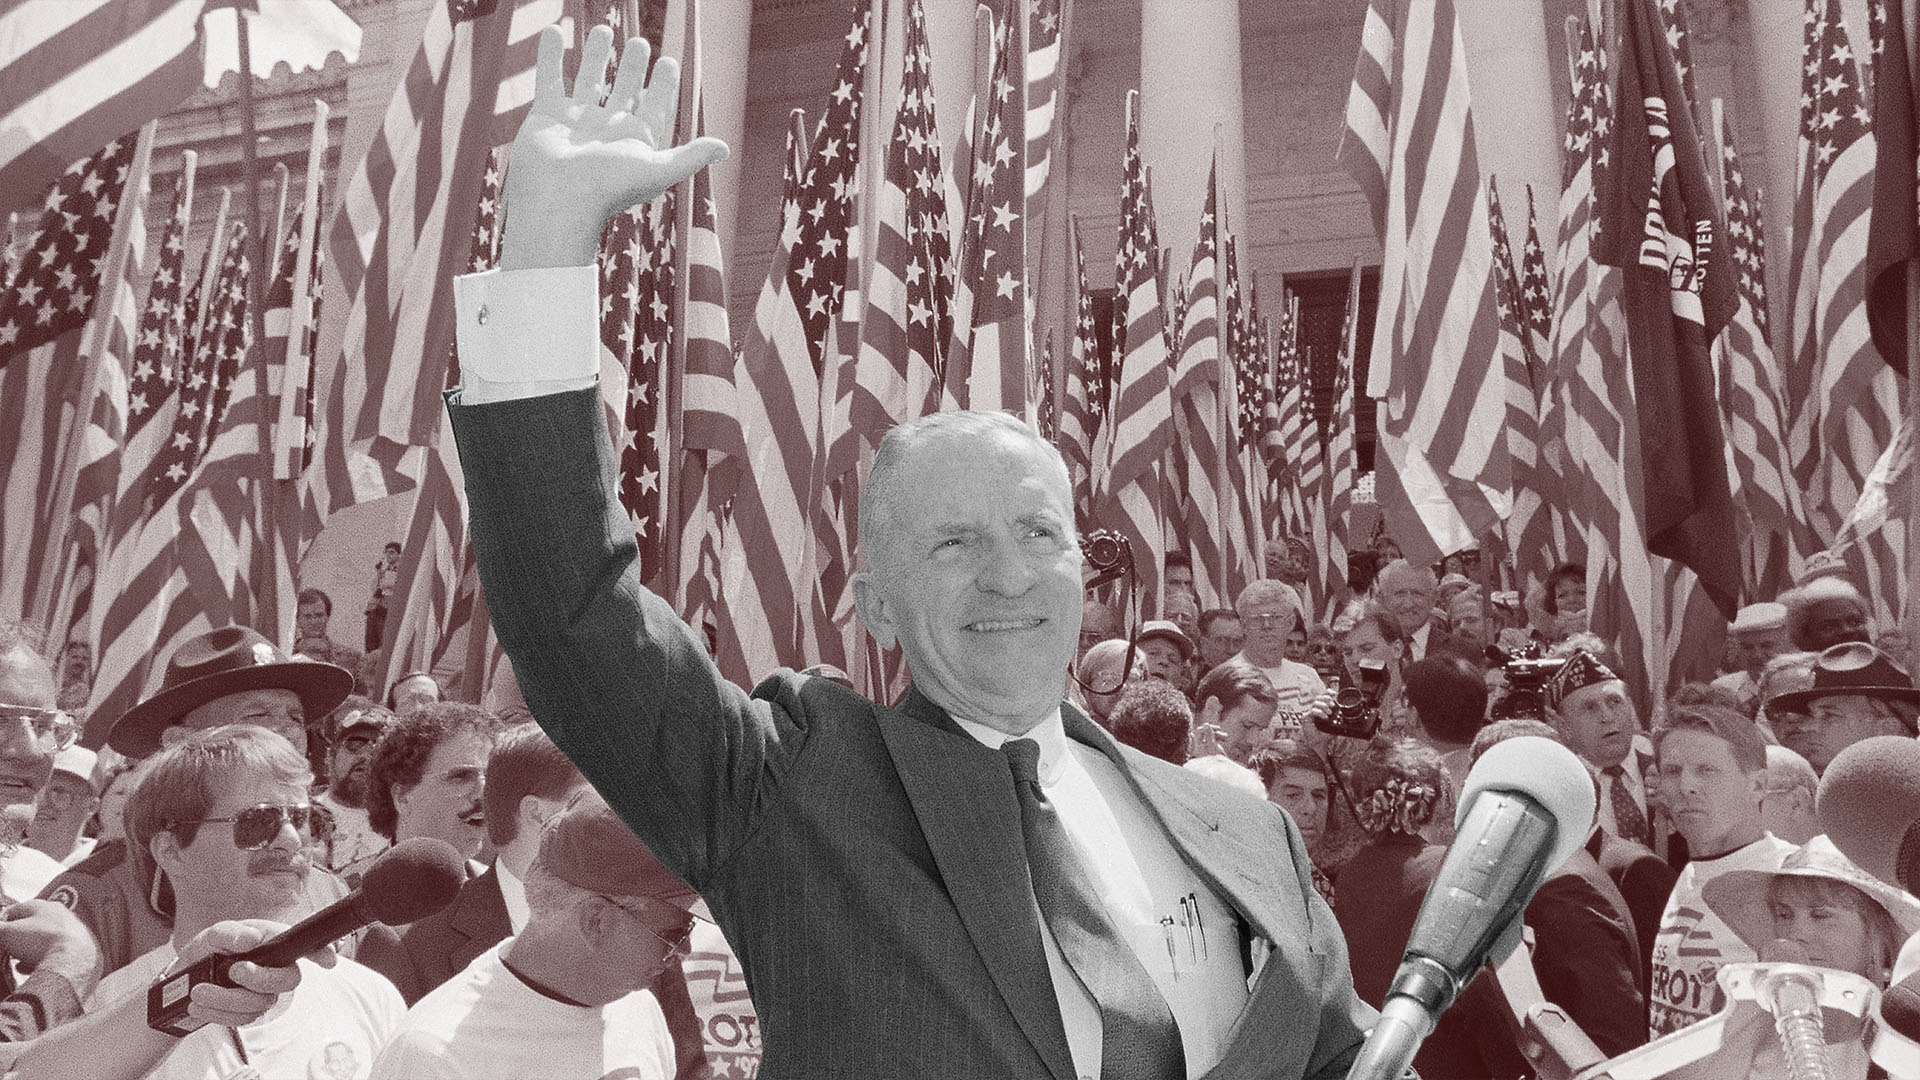 Ross Perot | Bio & Timeline